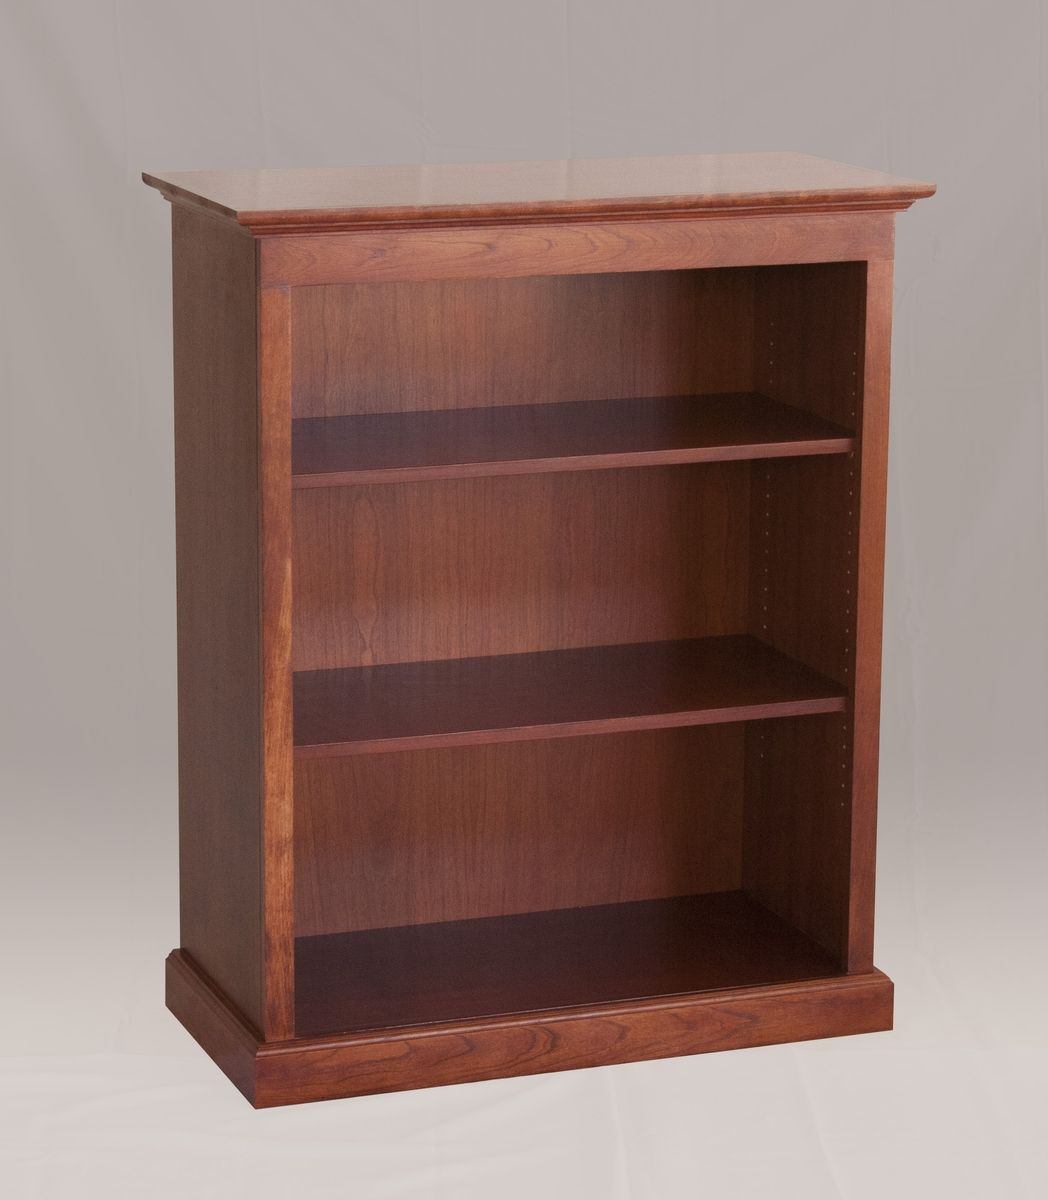 Hand Made Traditional Cherry Bookcase by Thinkjet Design